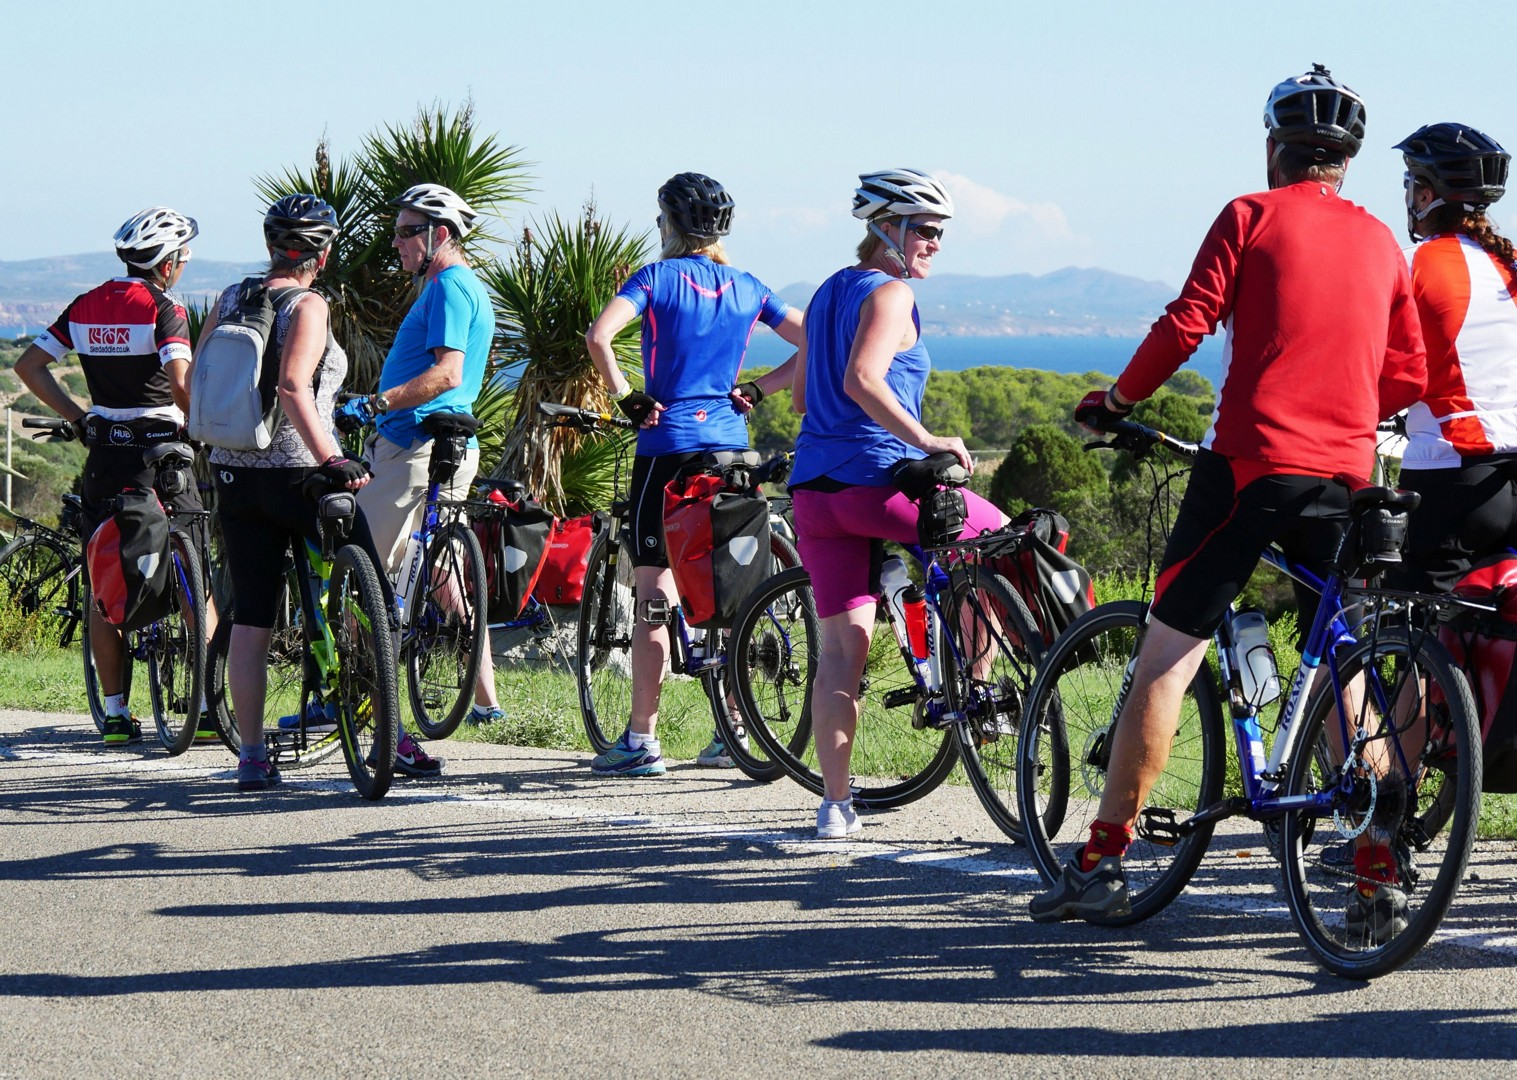 isola-di-san-pietro-cycling-group-sardinia.jpg - Italy - Sardinia - Island Flavours - Guided Leisure Cycling Holiday - Leisure Cycling